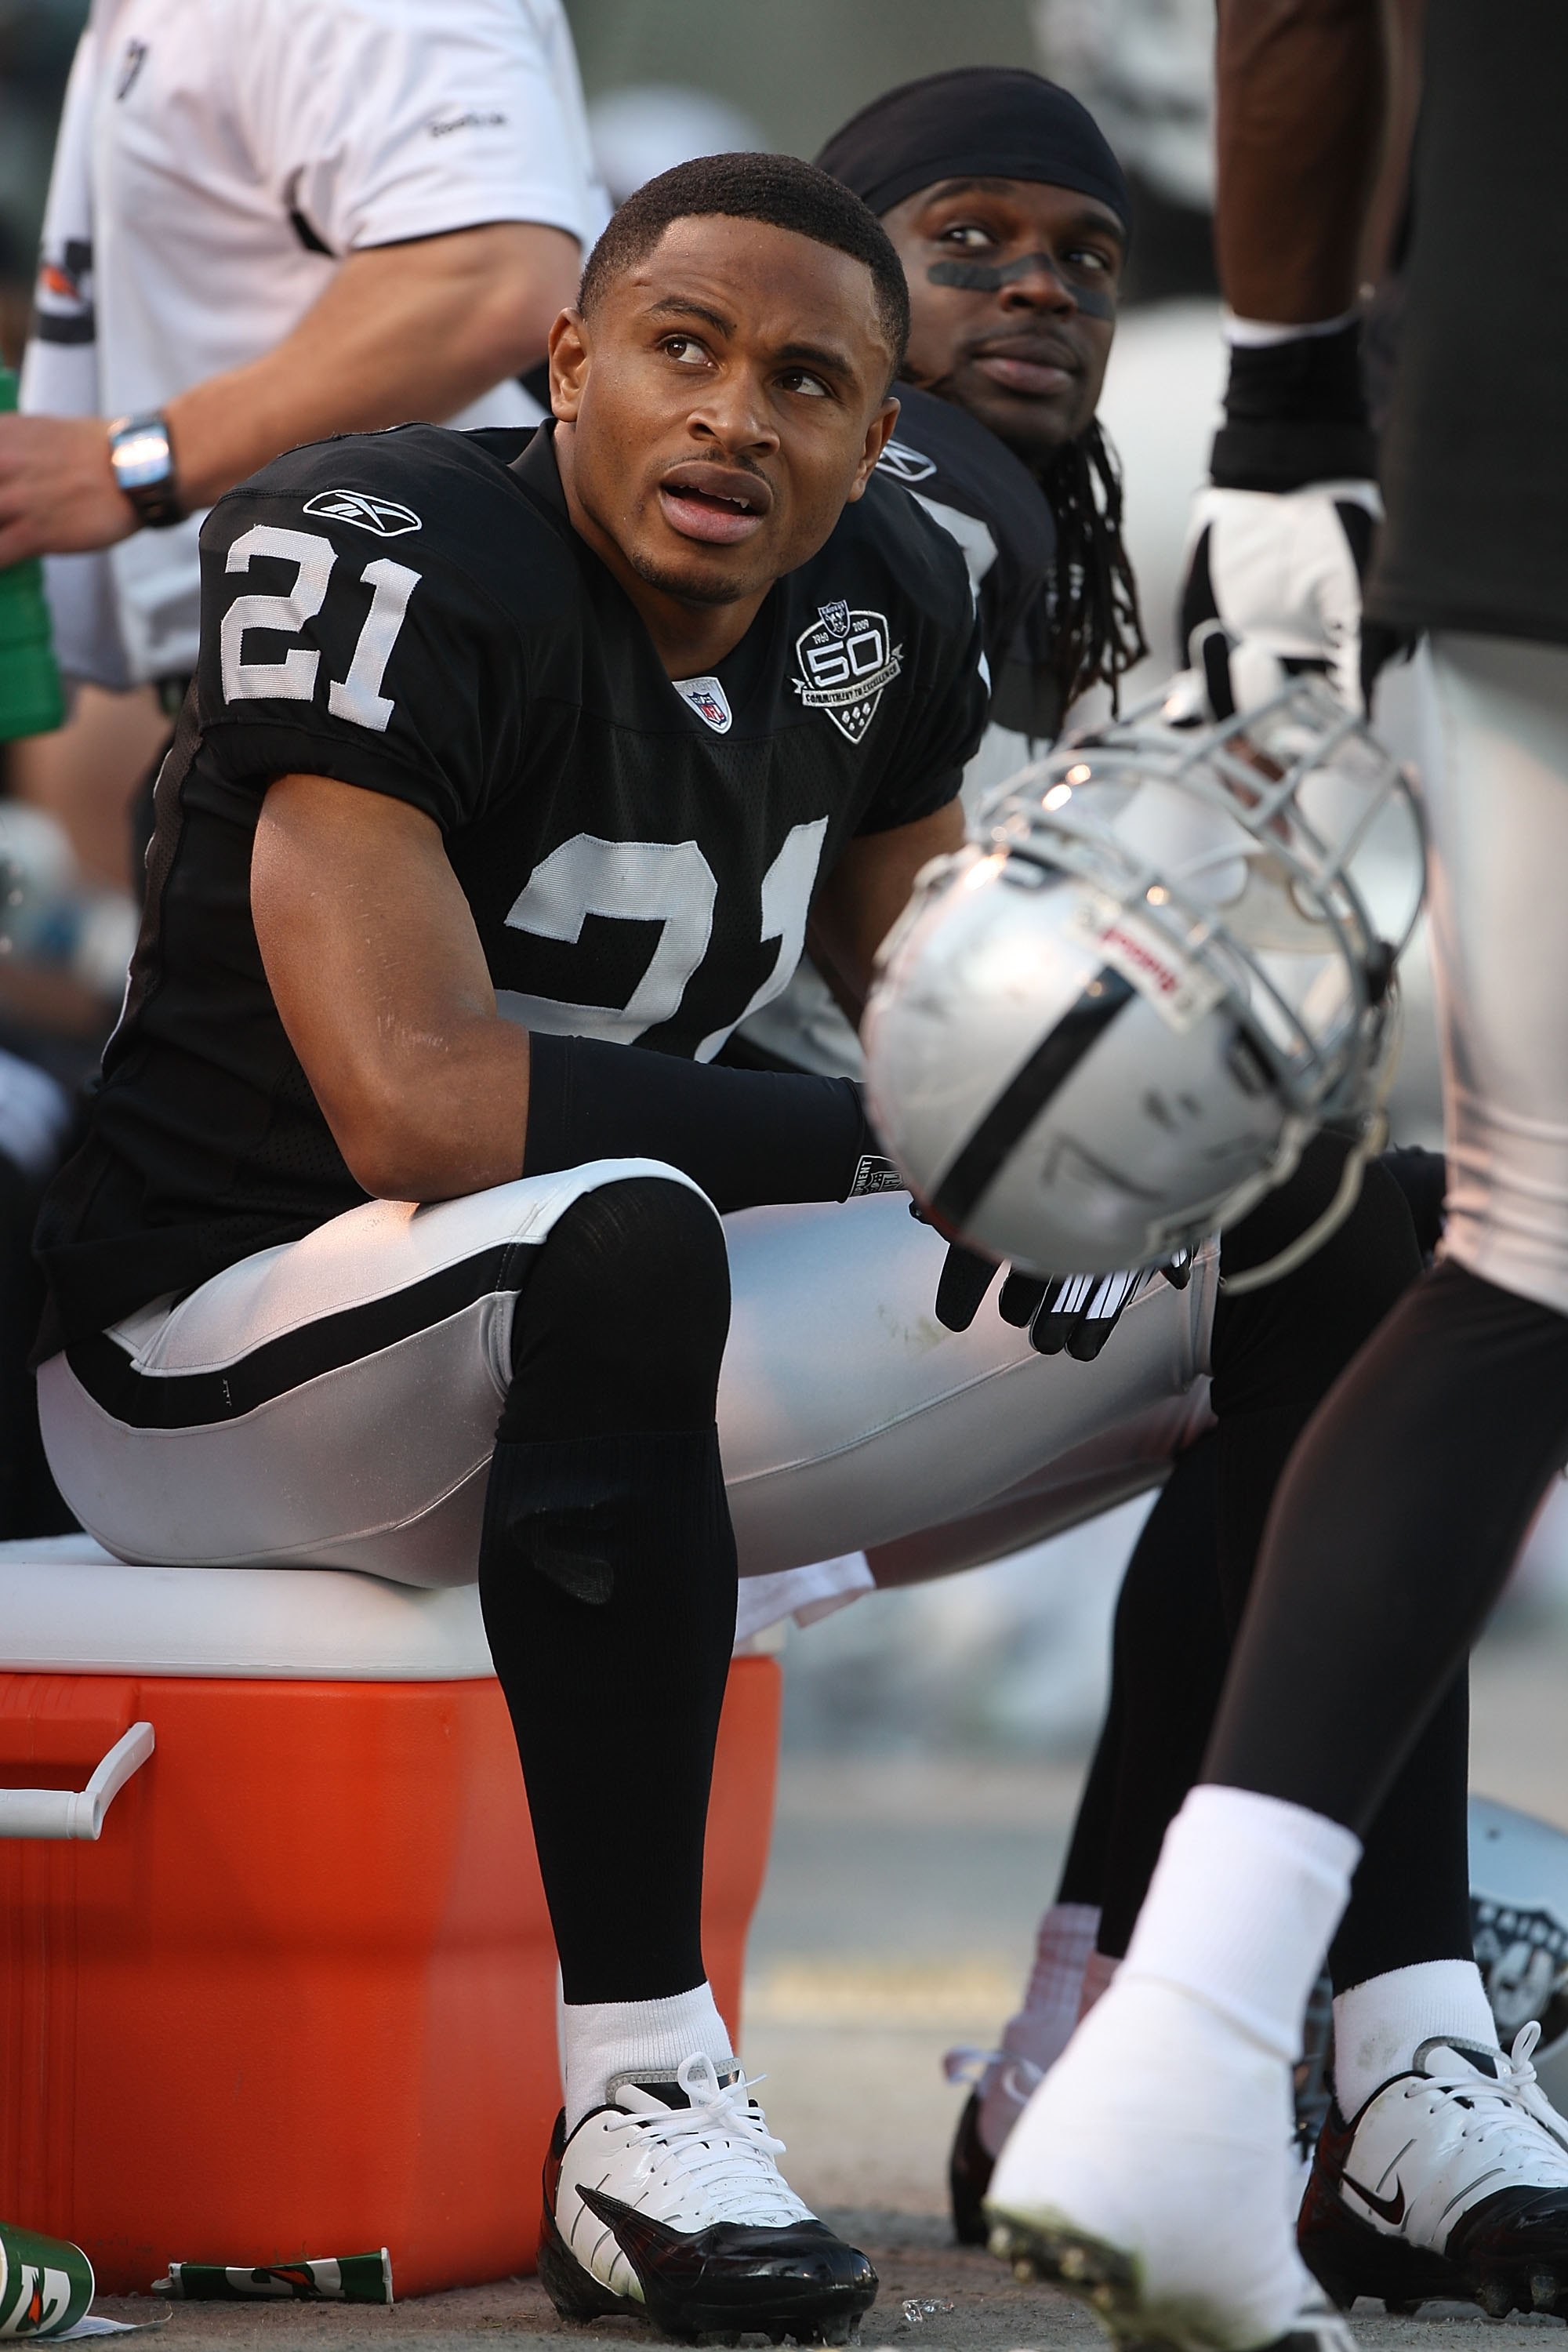 OAKLAND, CA - JANUARY 03:  Nnamdi Asomugha #21 of the Oakland Raiders sits on the bench against the Baltimore Ravens during an NFL game at Oakland-Alameda County Coliseum on January 3, 2010 in Oakland, California.  (Photo by Jed Jacobsohn/Getty Images)